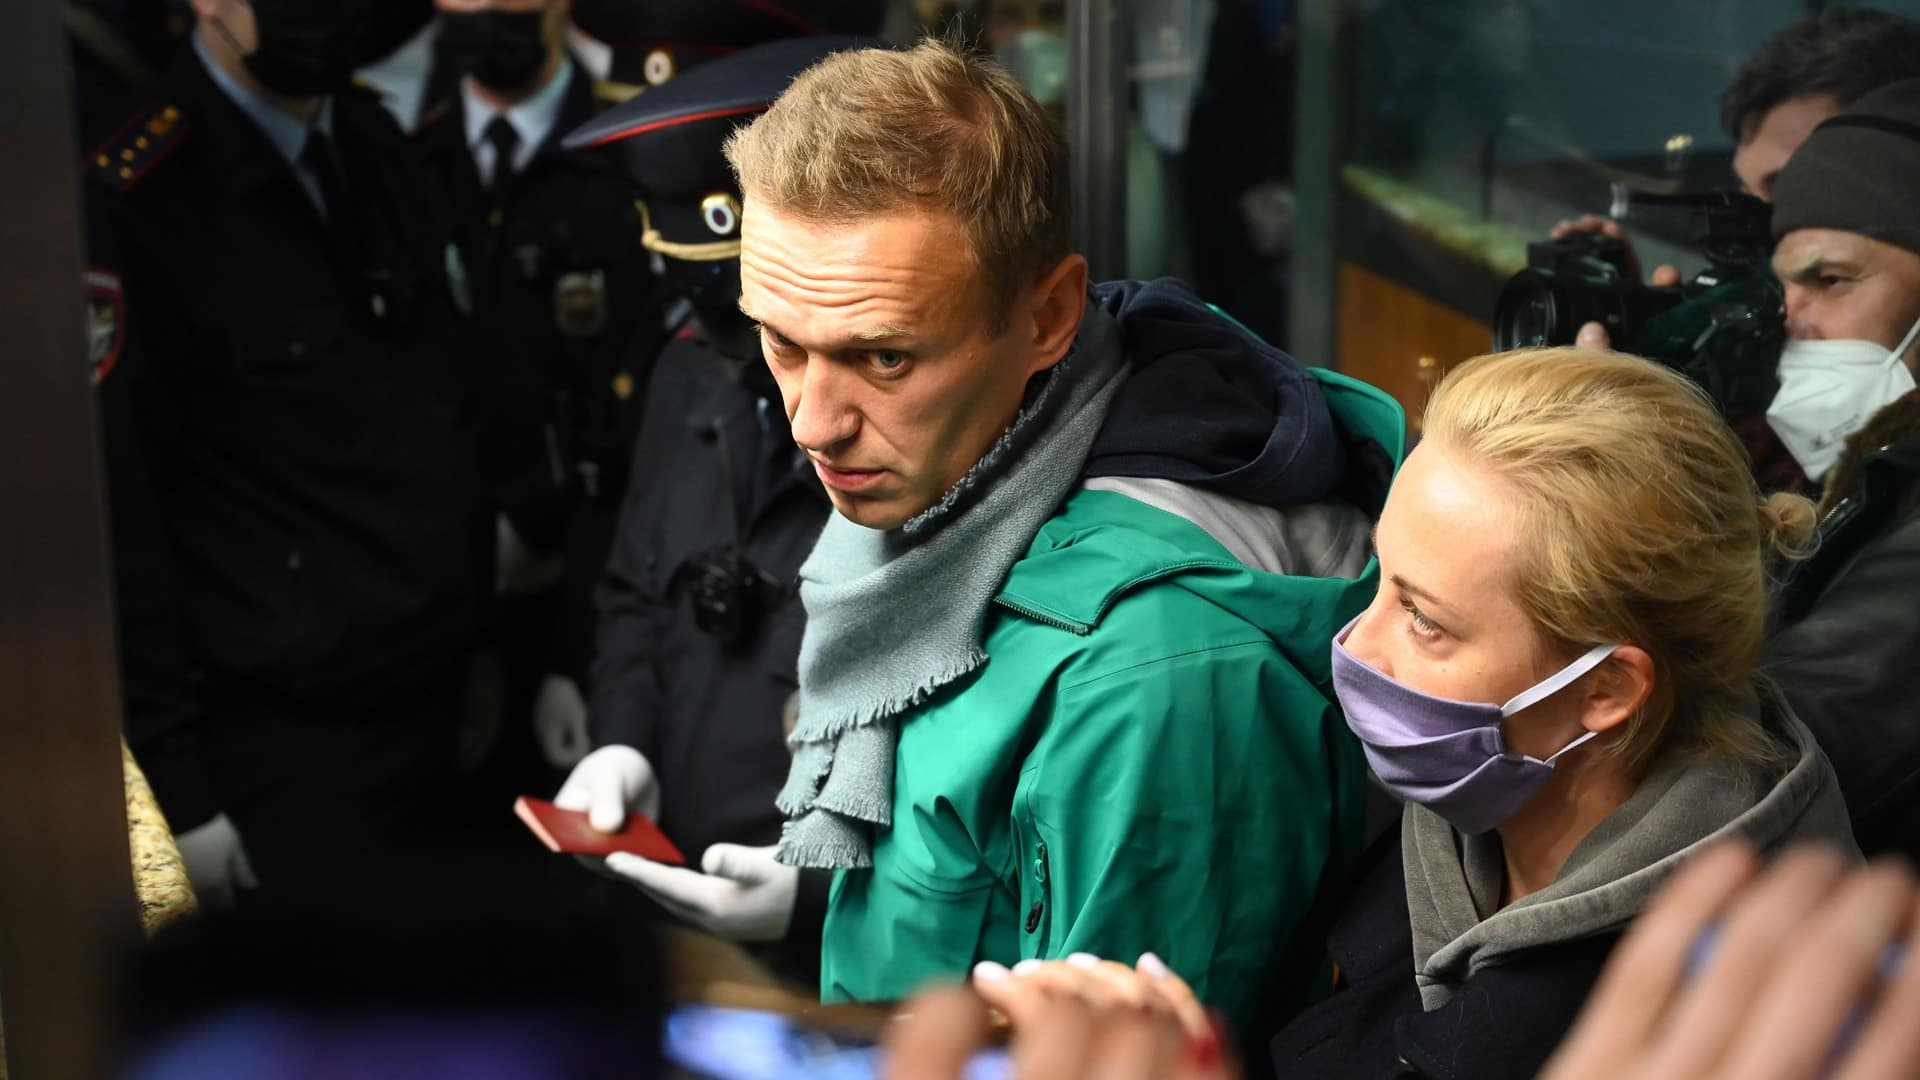 Kremlin critic Alexei Navalny detained upon arrival back in Russia thumbnail